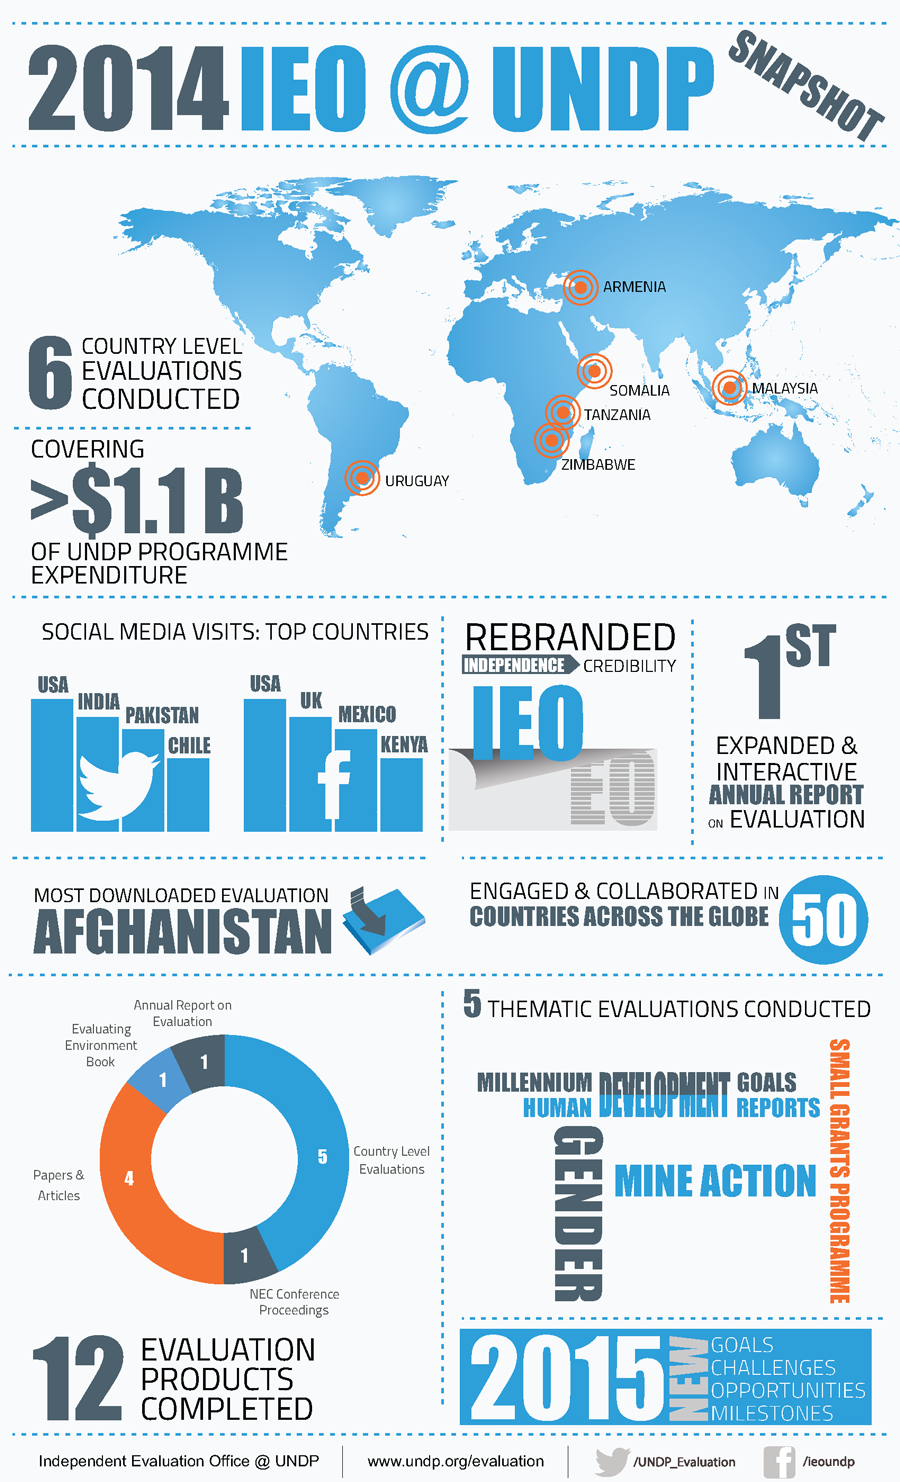 United nations development programme evaluation ieo 2014 infograph ieo undp 2014 publicscrutiny Image collections